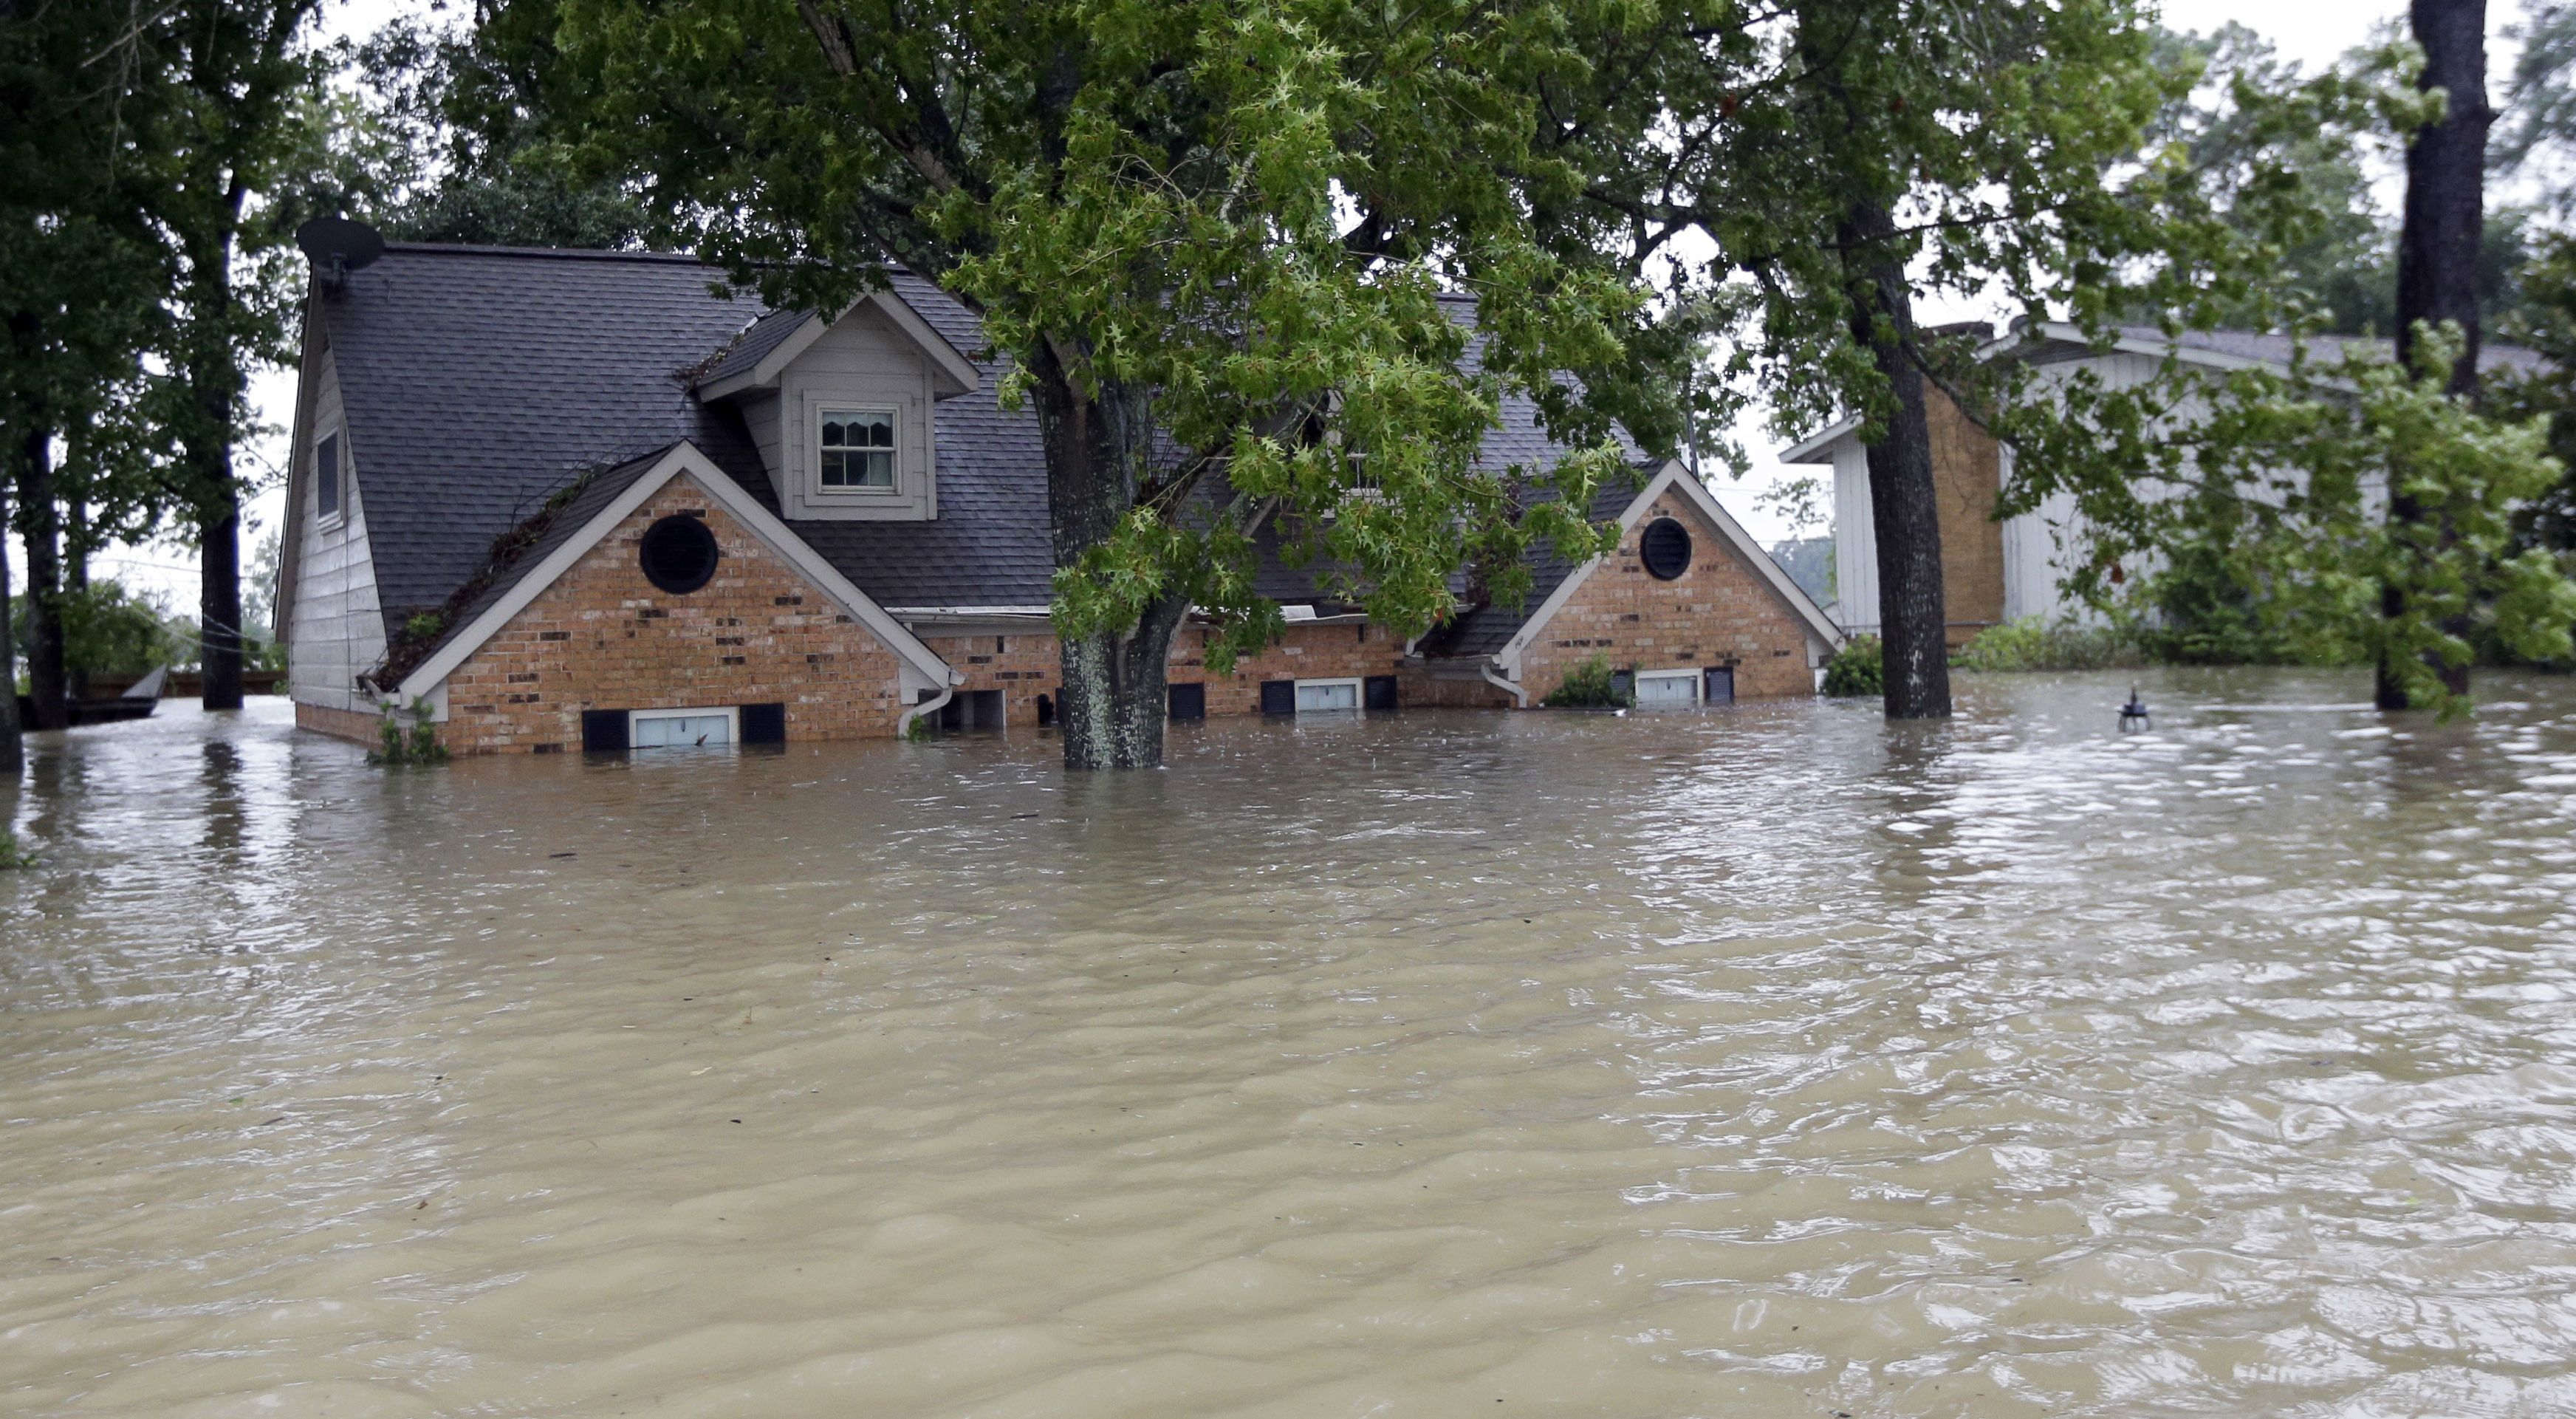 Why Hurricane Resistant Homes Aren T Constructed Bought More Frequently Flood Insurance Flood Risk Homeowner